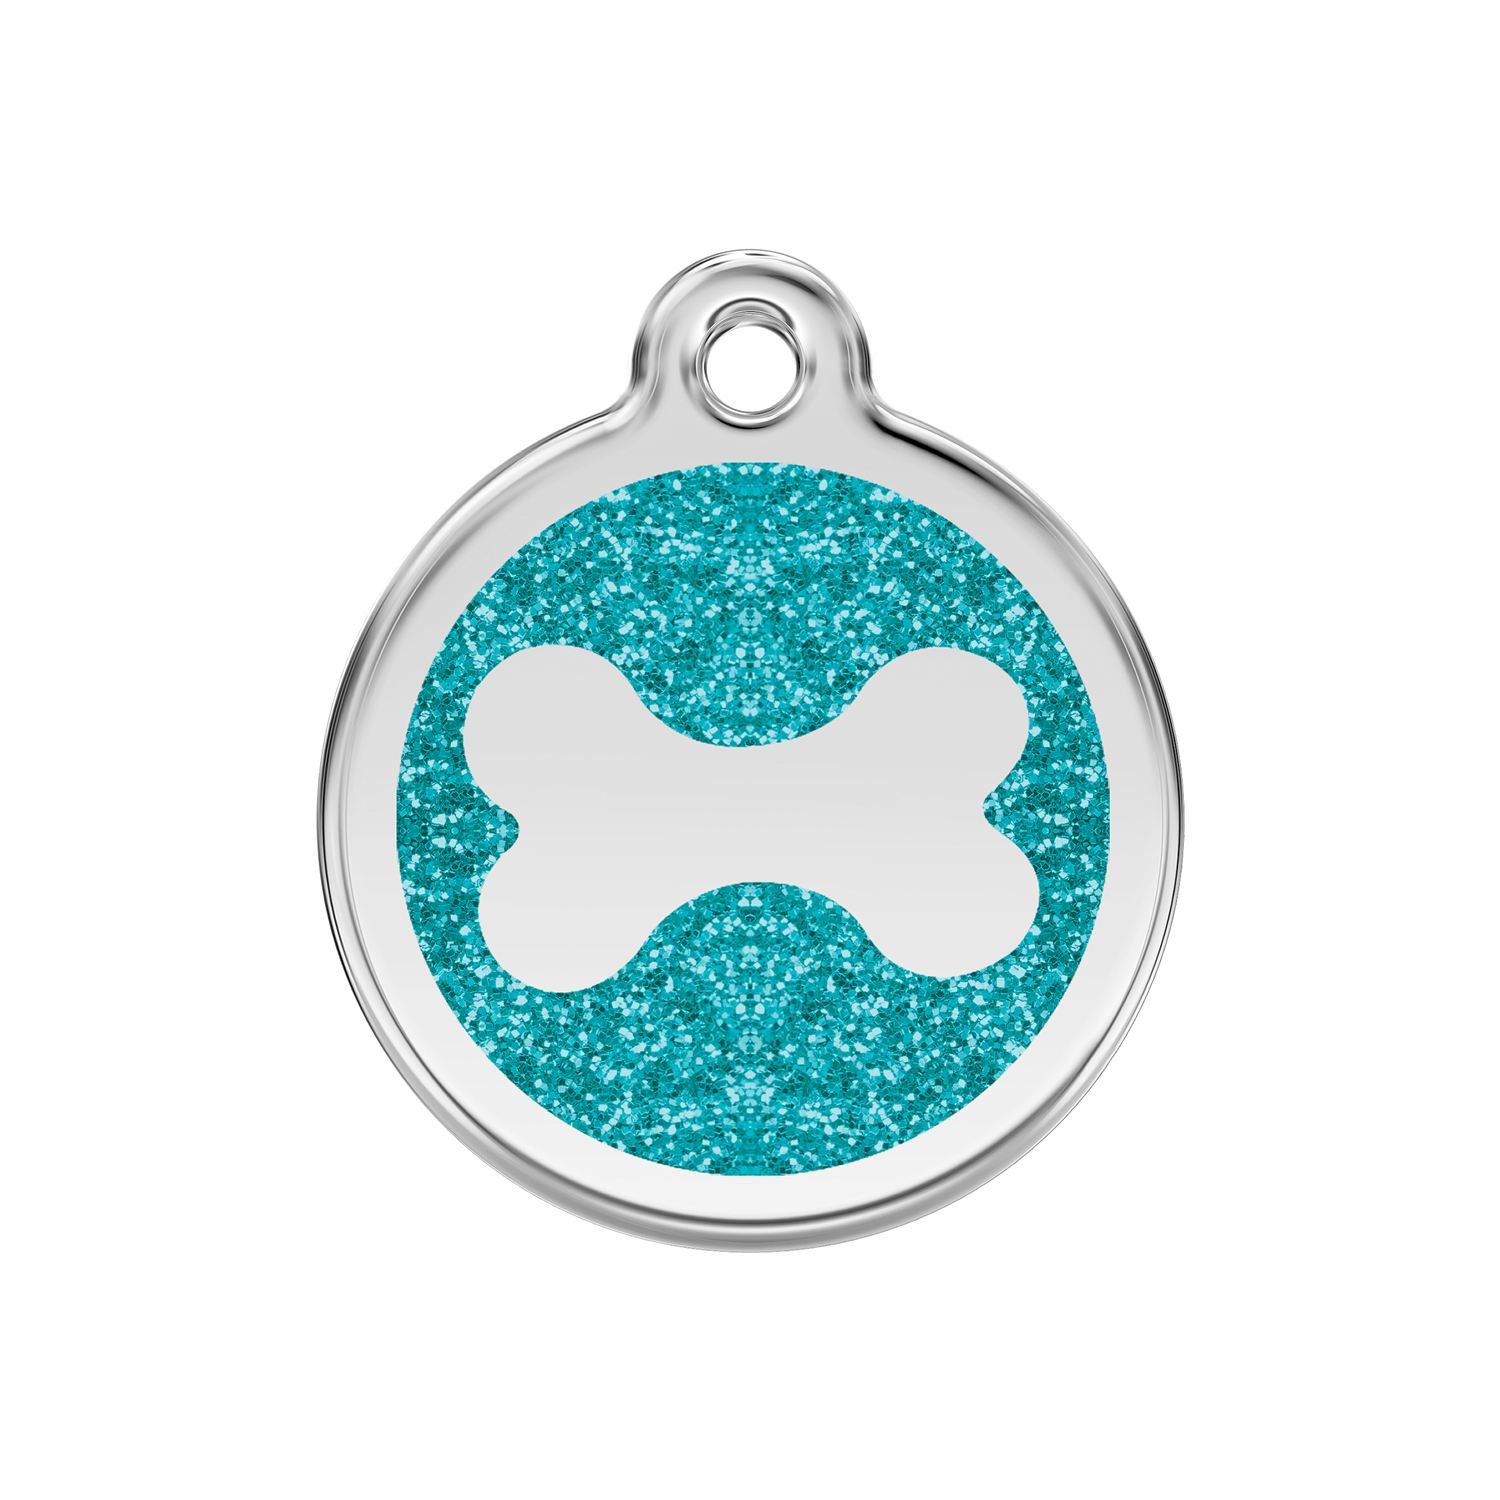 Aqua Bone Medium Glitter Enamel & Stainless Steel Tag>